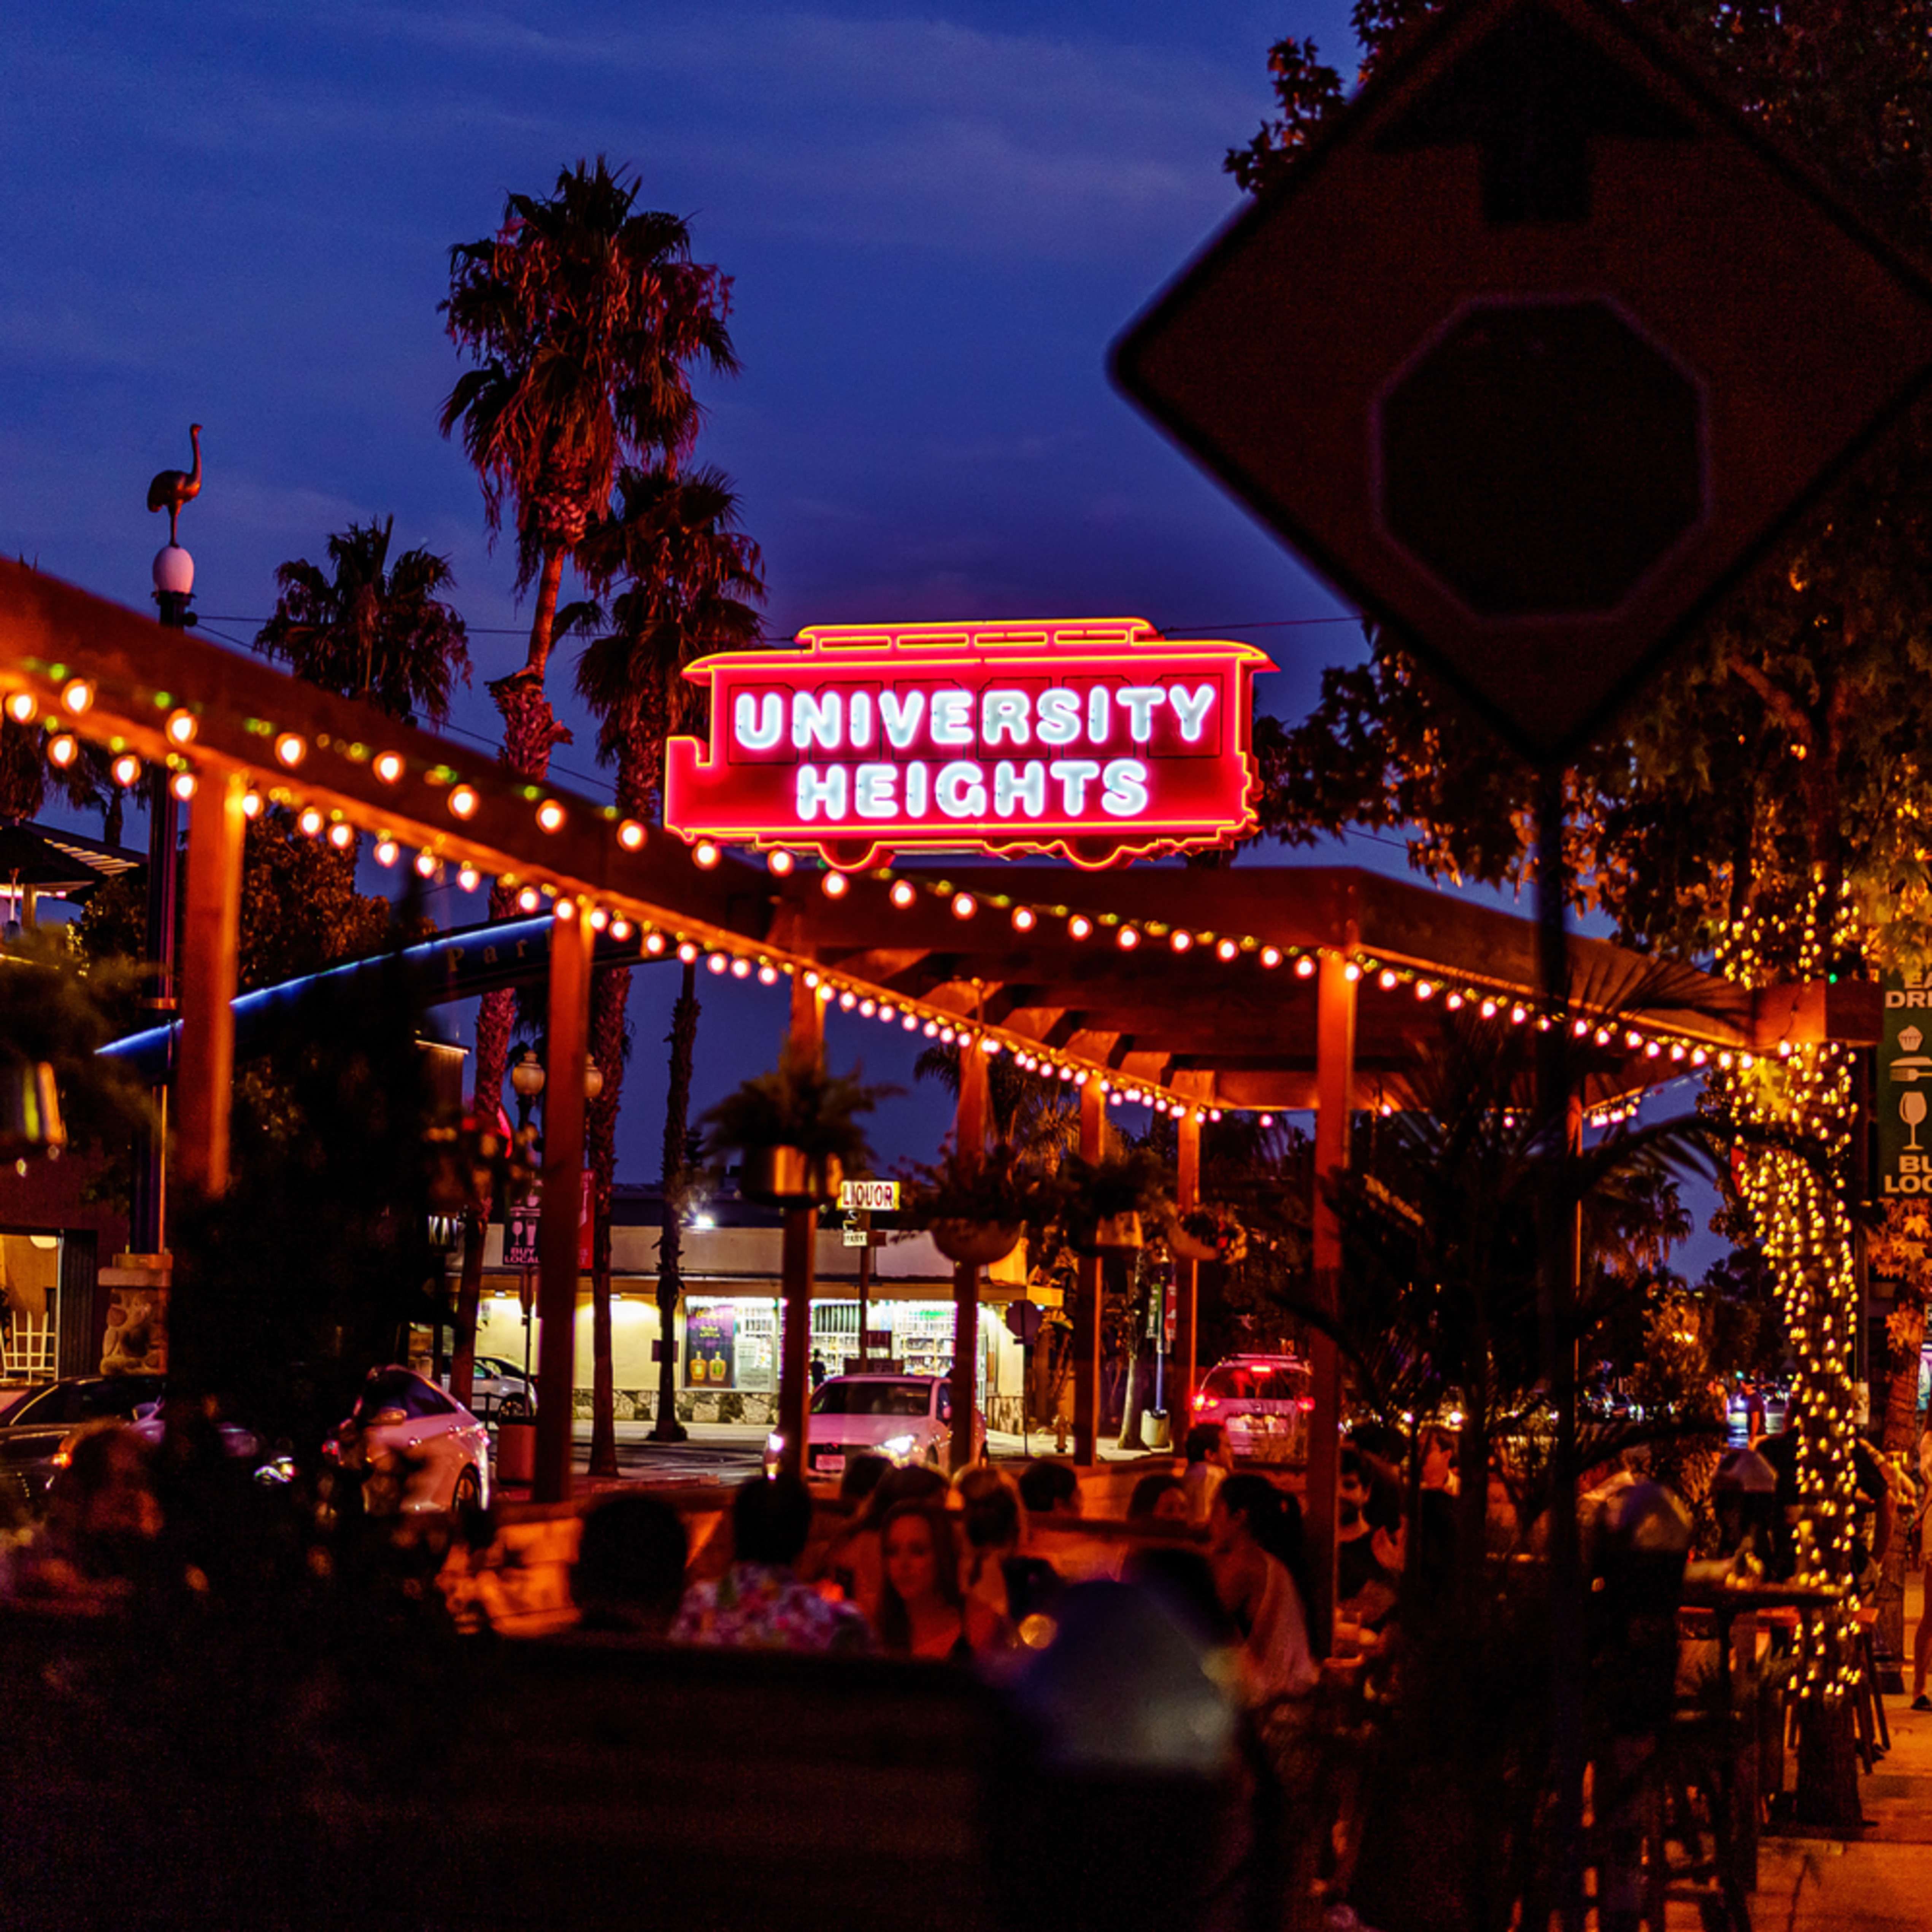 University heights san diego outdoor dining no watermark print size 8 19 2020 1 j3kgfw